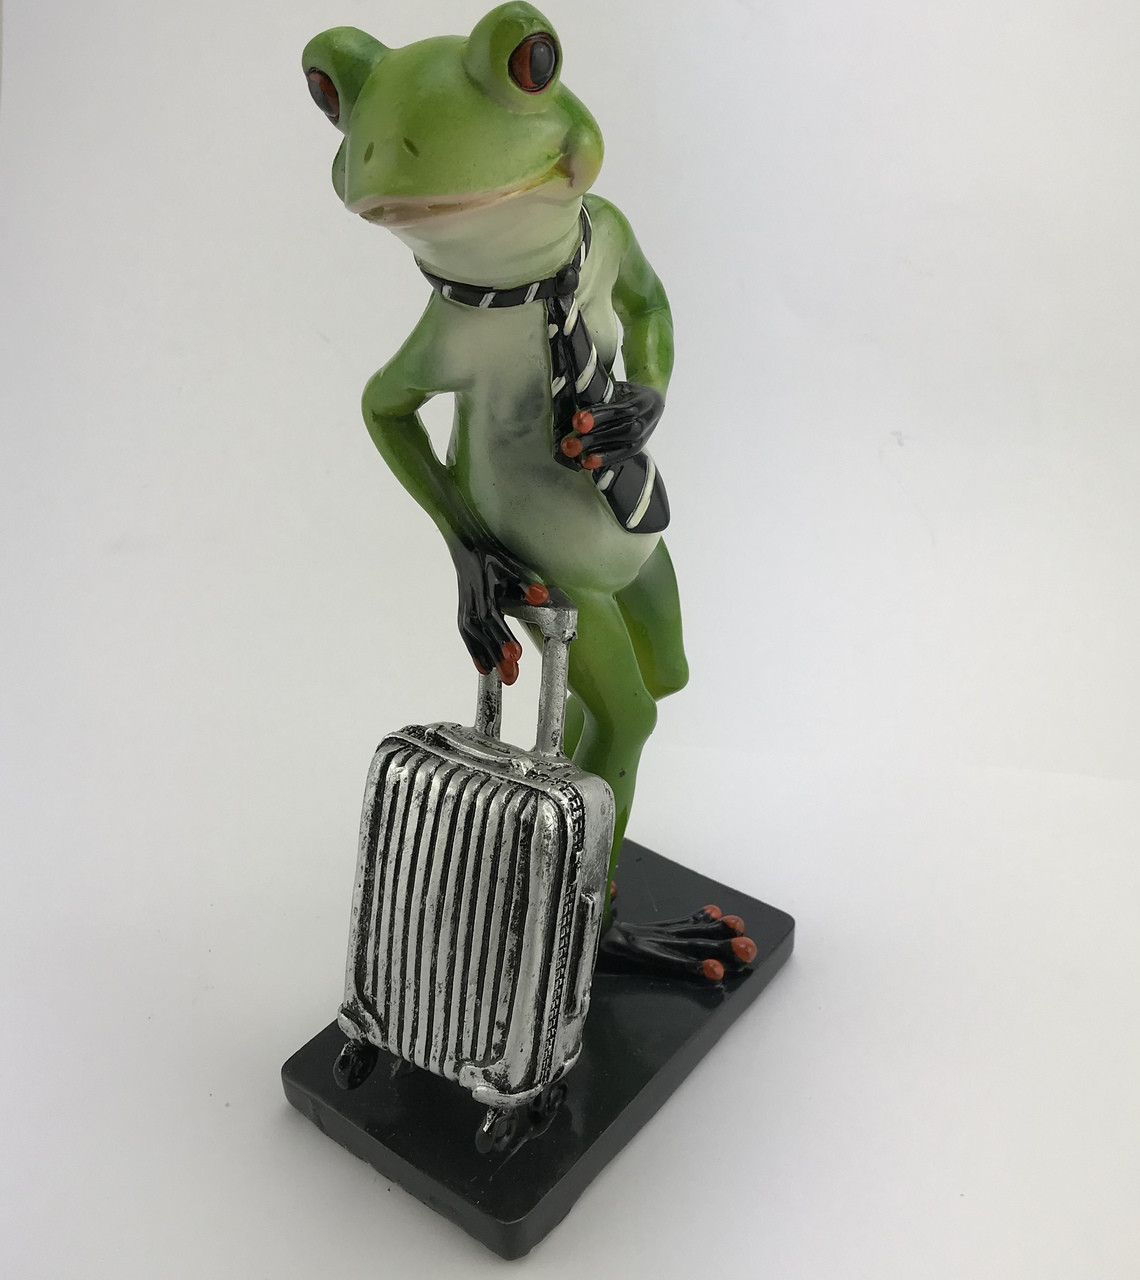 CHEEKY FROG ON STAND - WITH SUITECASE AND TIE